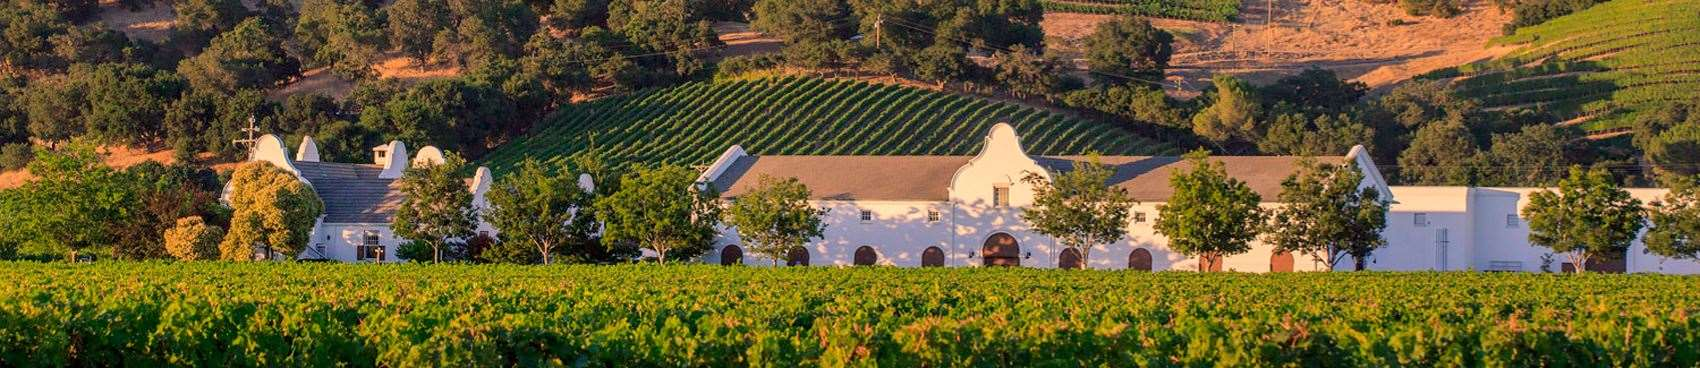 A image of Chimney Rock Winery